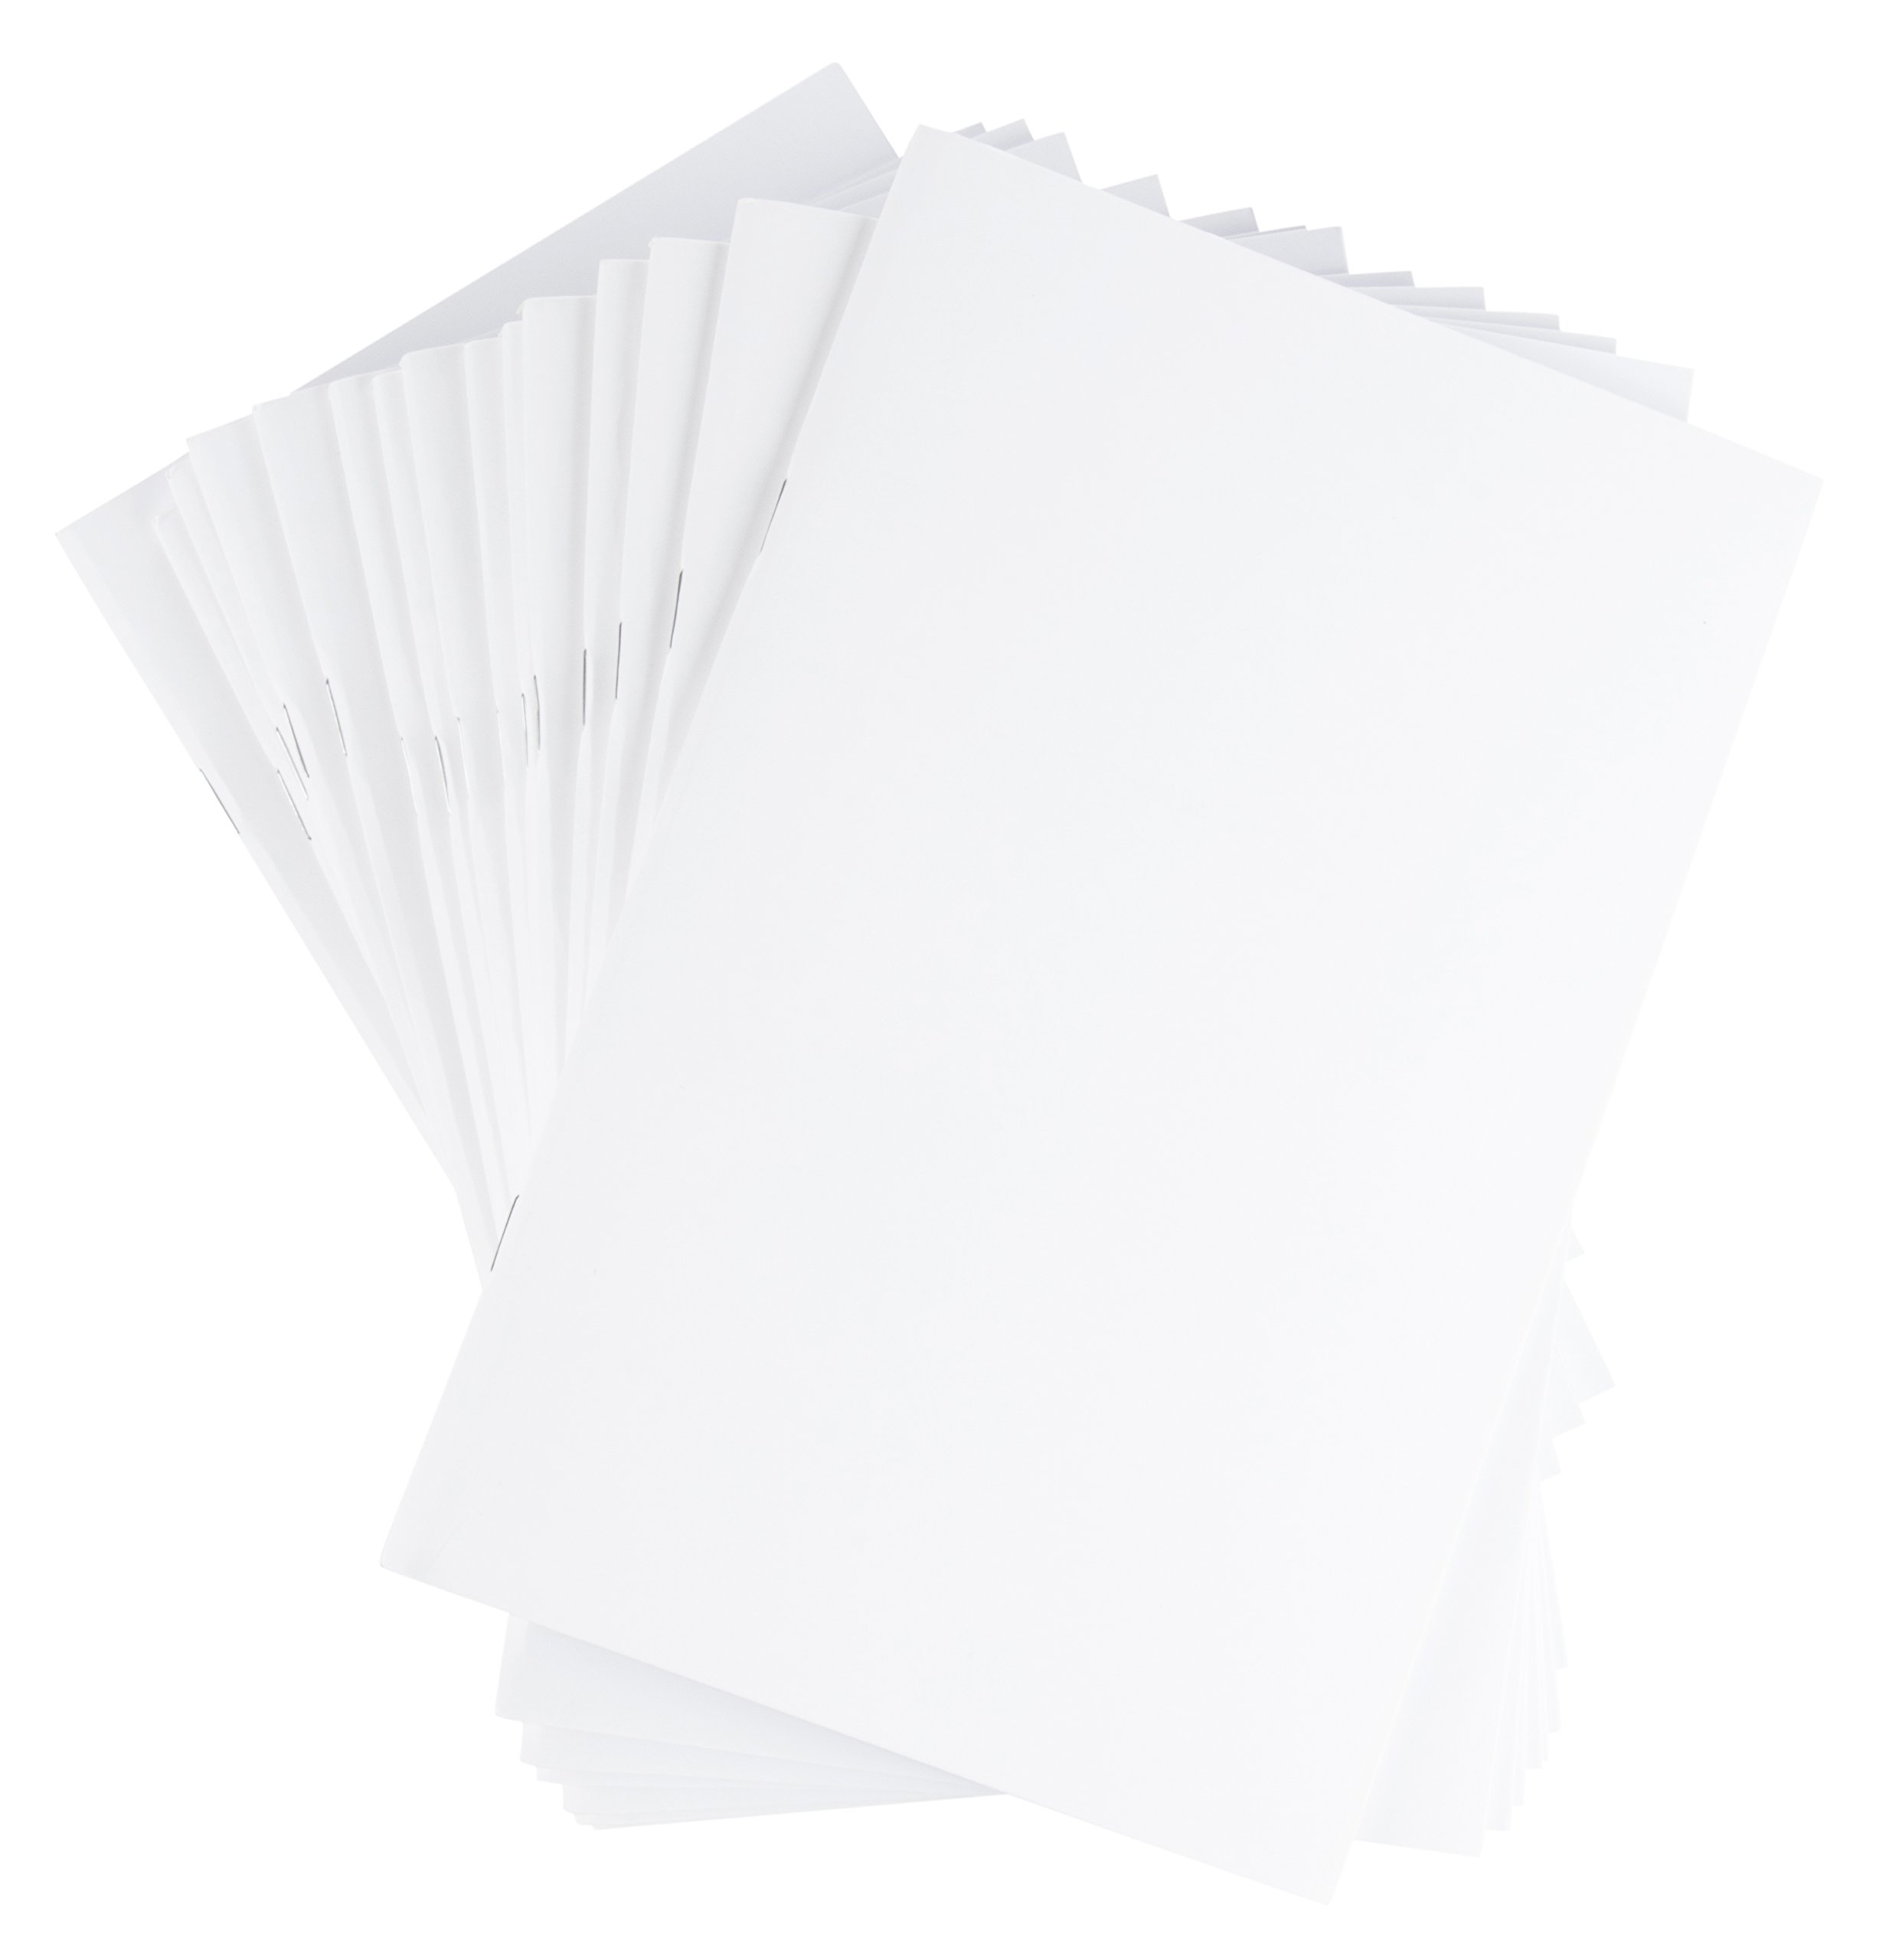 Blank Notebook - 24-Pack Unlined Books, Unruled Plain Travel Journals for Students, School, Children's Writing Books, Creative Class Project, White, 5.5 x 8.5 Inches, Half Letter Sized, 24 Sheets Each by Paper Junkie (Image #6)